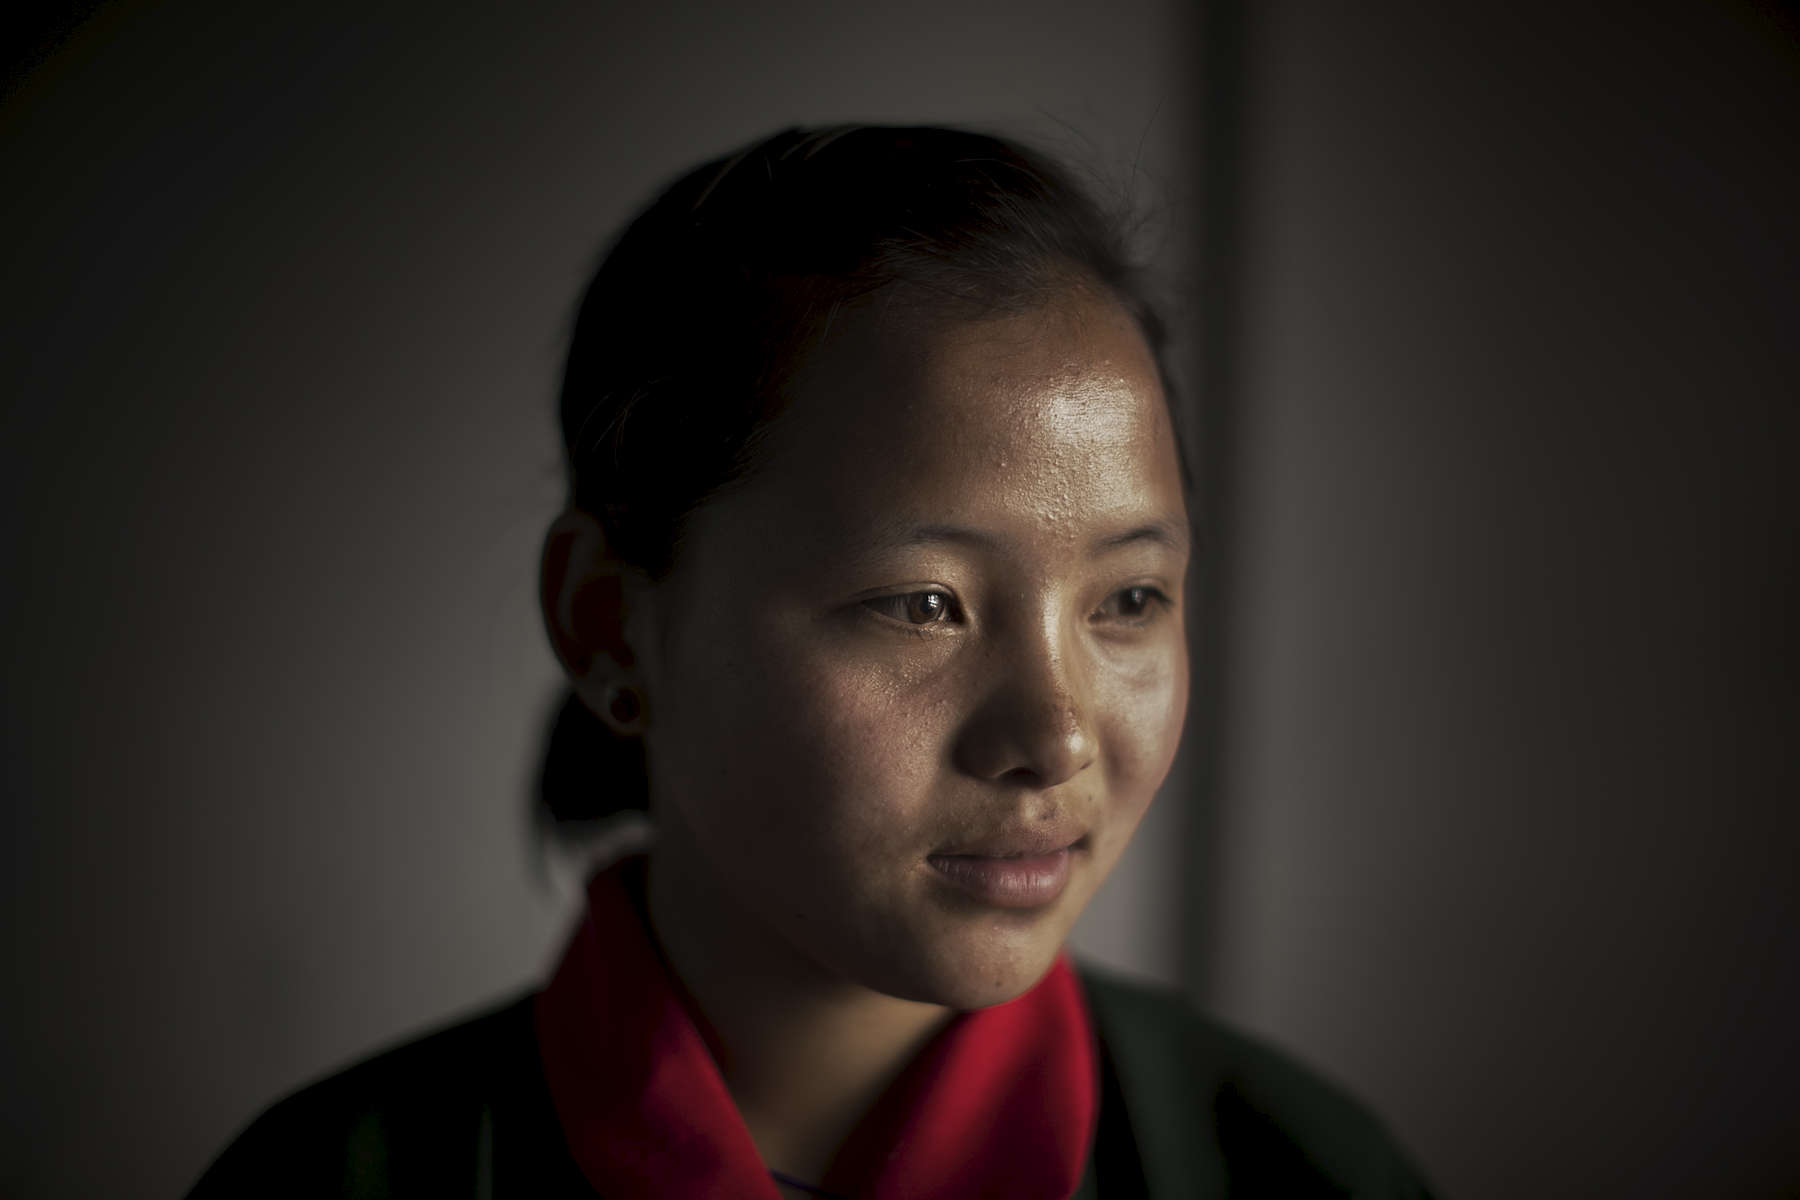 Lhaden Wangmo is 18 years old and currently studying in class 9 at Bitika Lower Secondary School.Lhaden dreams of becoming a doctor or an academic when she finished school and she talked at length about her love for study. Lhaden receives a scholarship from the  Australian Himalayan Foundation in partnership with RENEW Bhutan. The scholarship is part of a reintegration program for children who are survivors of rape, children of victims and survivors of domestic violence.